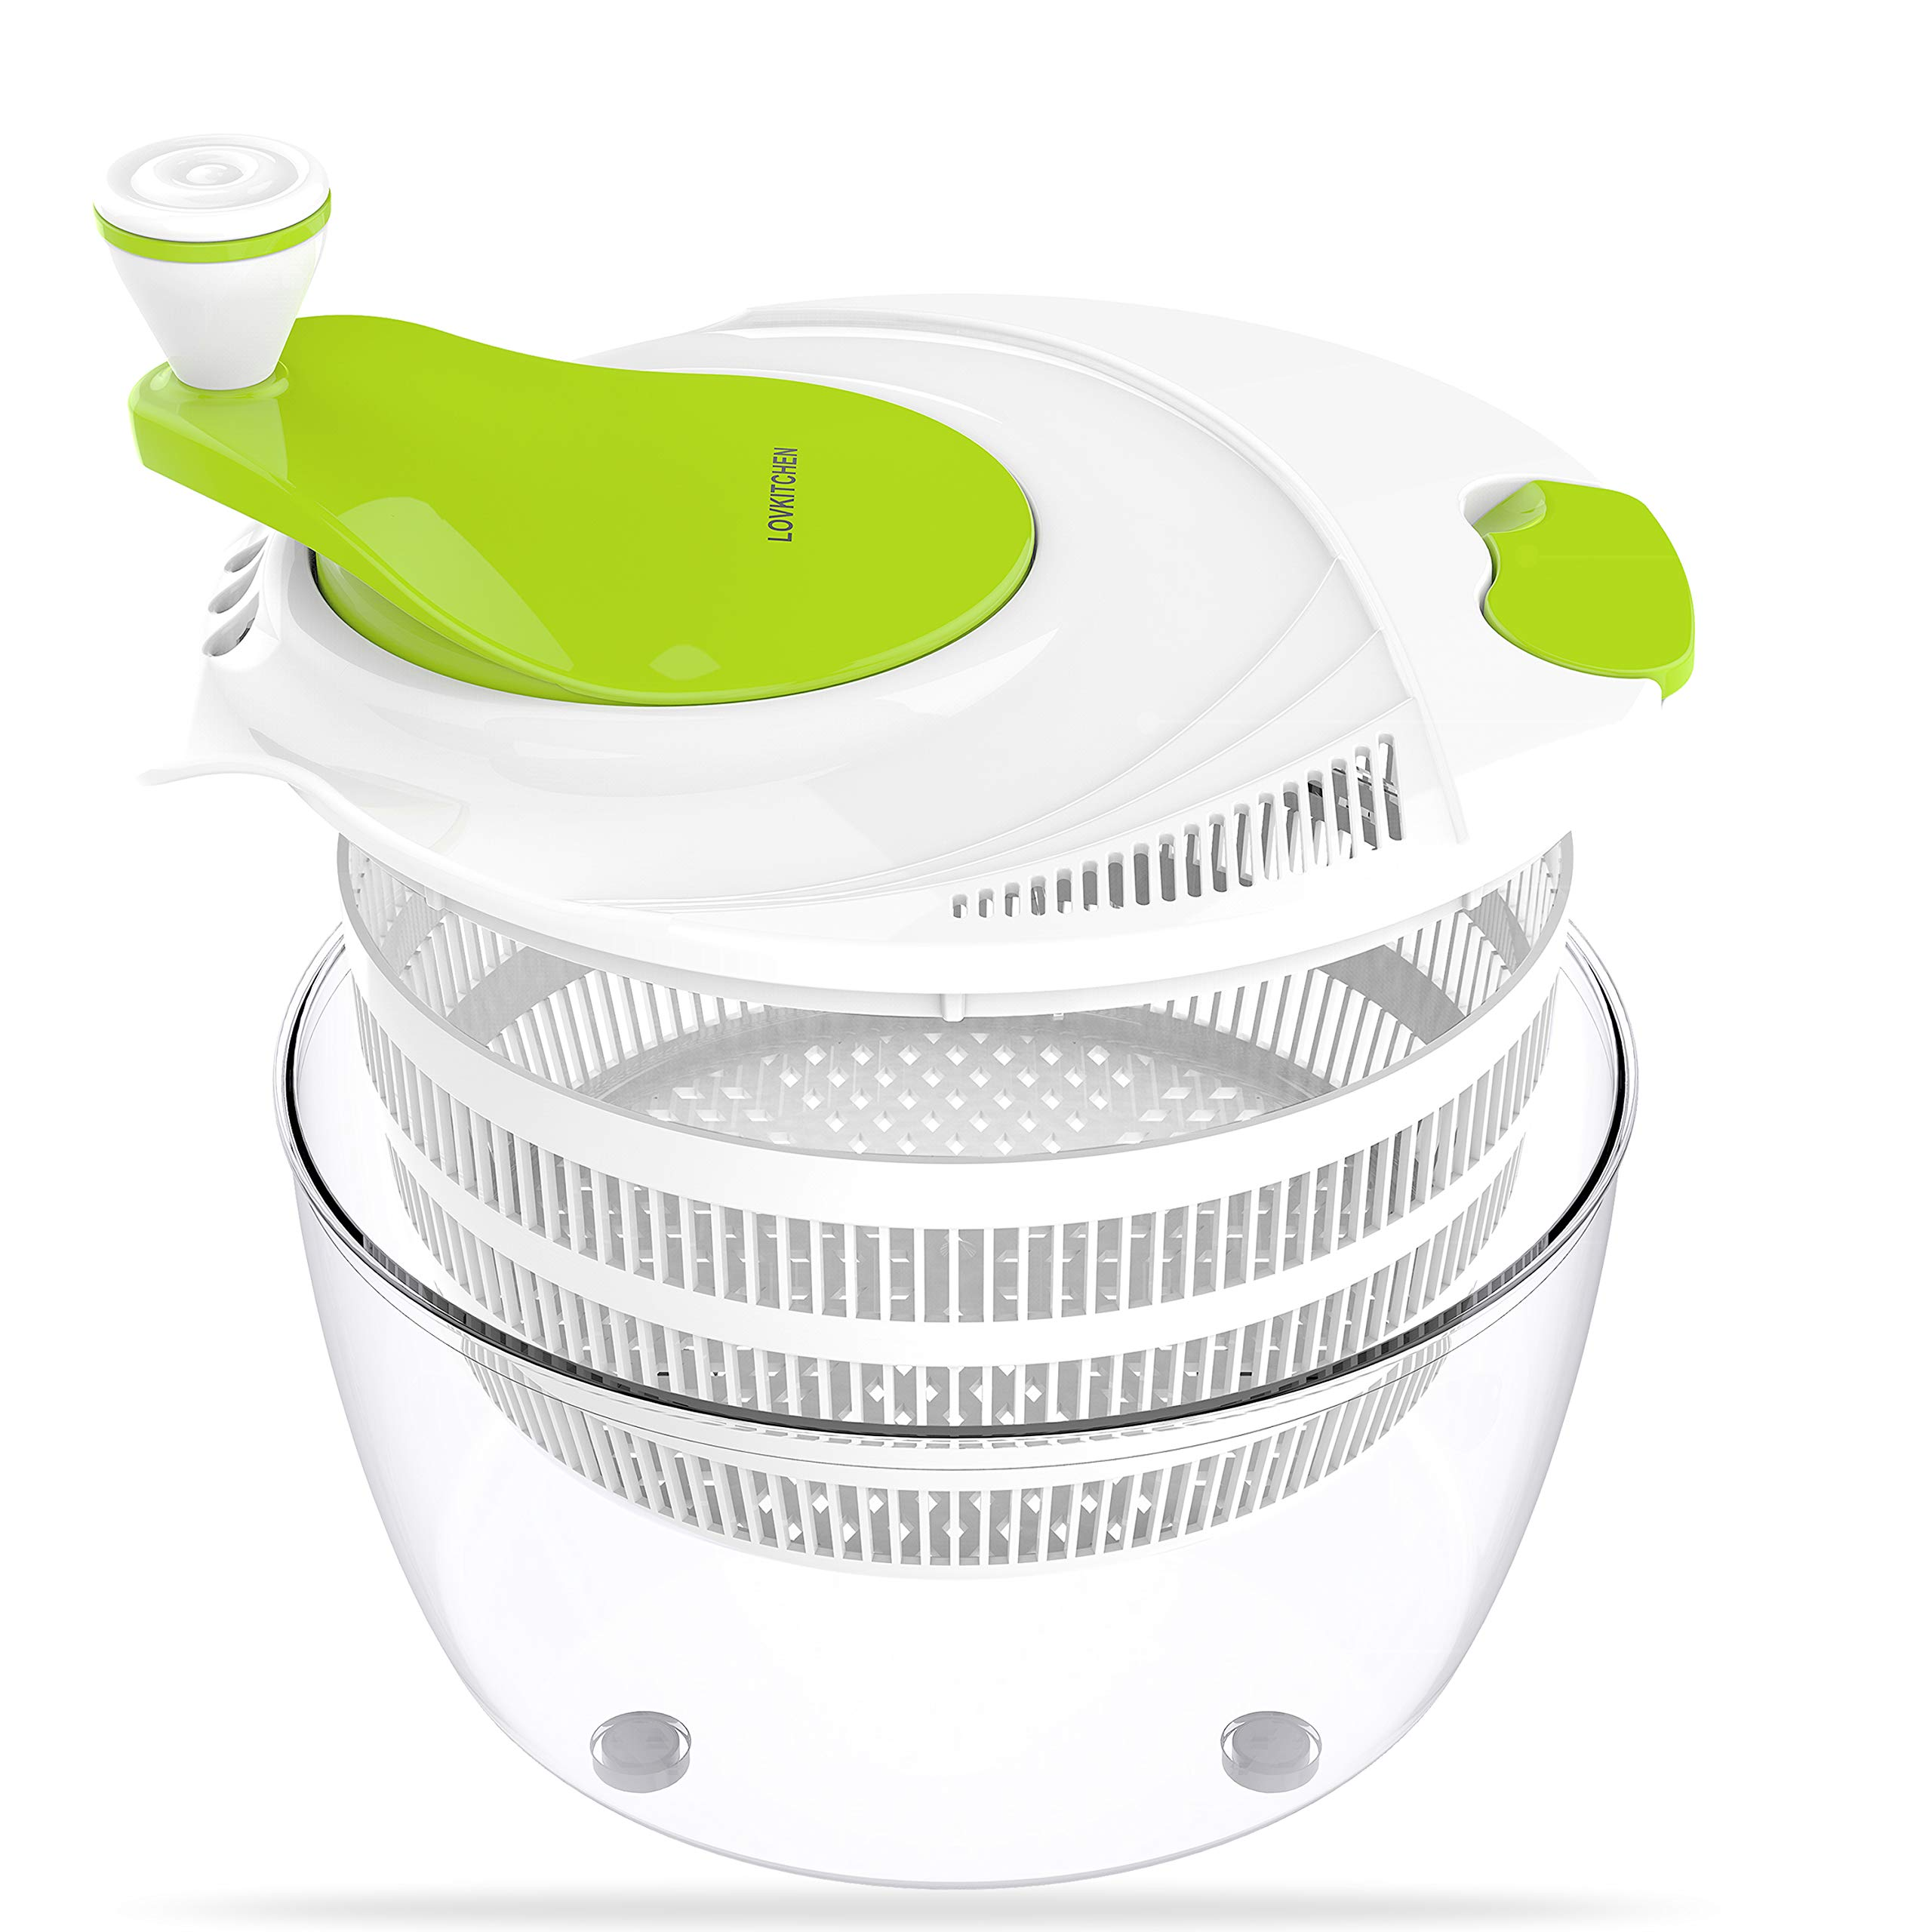 LOVKITCHEN Salad Spinner, Plastic Kitchen Large 4 Quarts Fruits and Vegetables Dryer Quick Dry Design BPA Free Dry Off & Drain Lettuce and Vegetable - Green-White